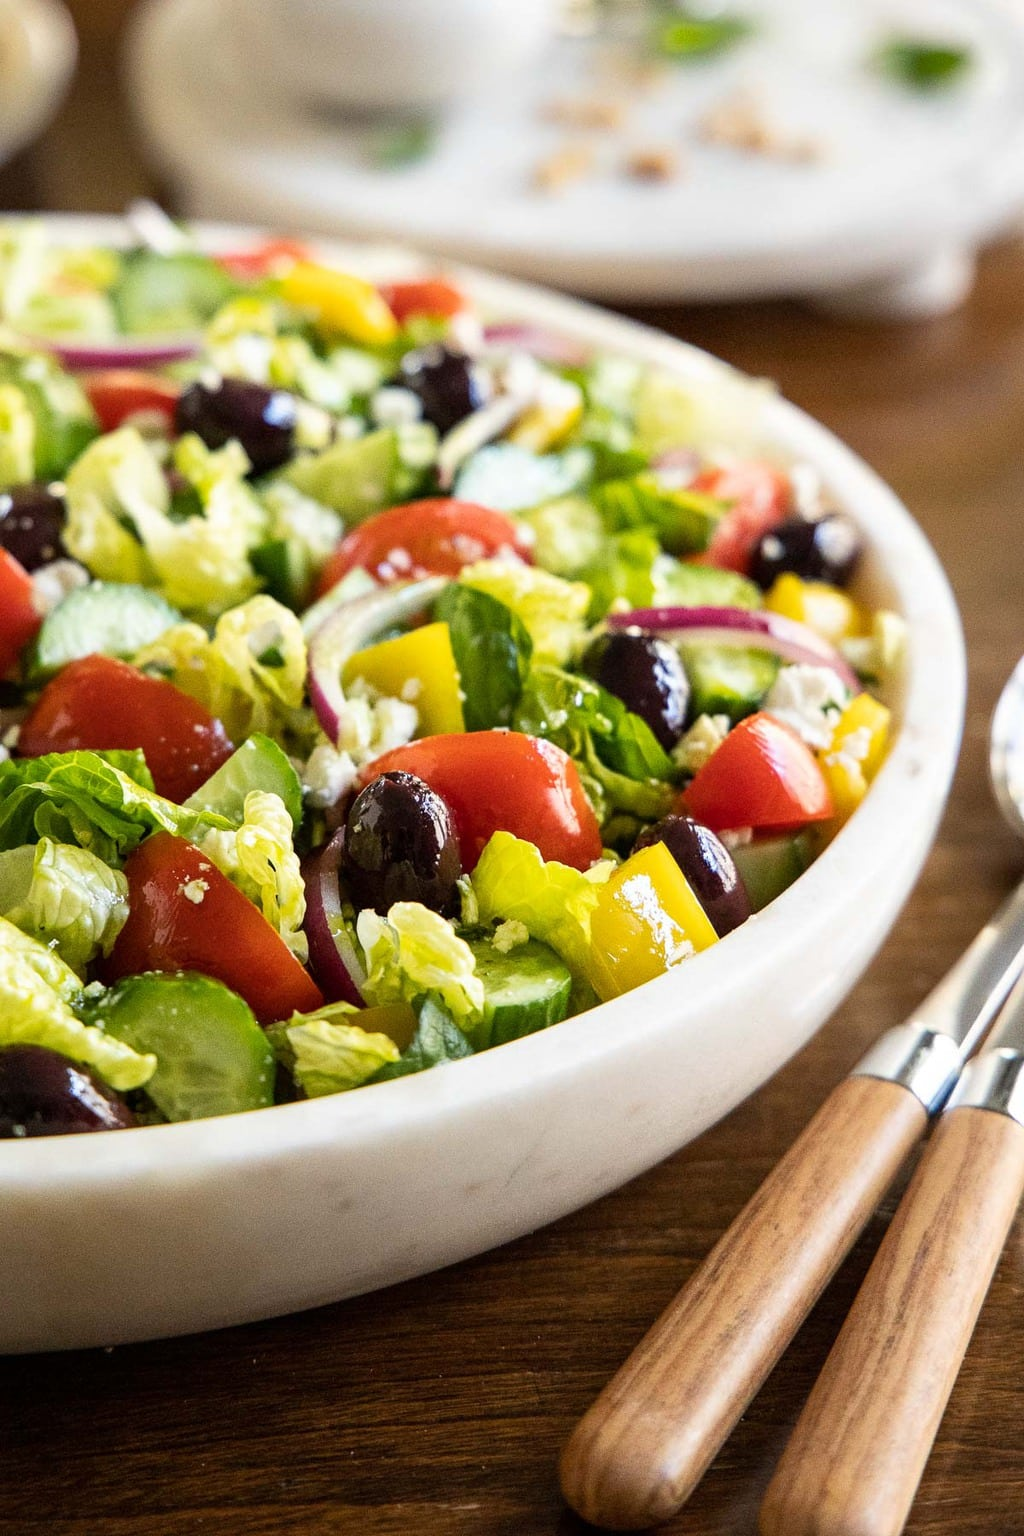 Vertical closeup photo of The BEST Greek Salad in a white marble serving bowl on a wood table.